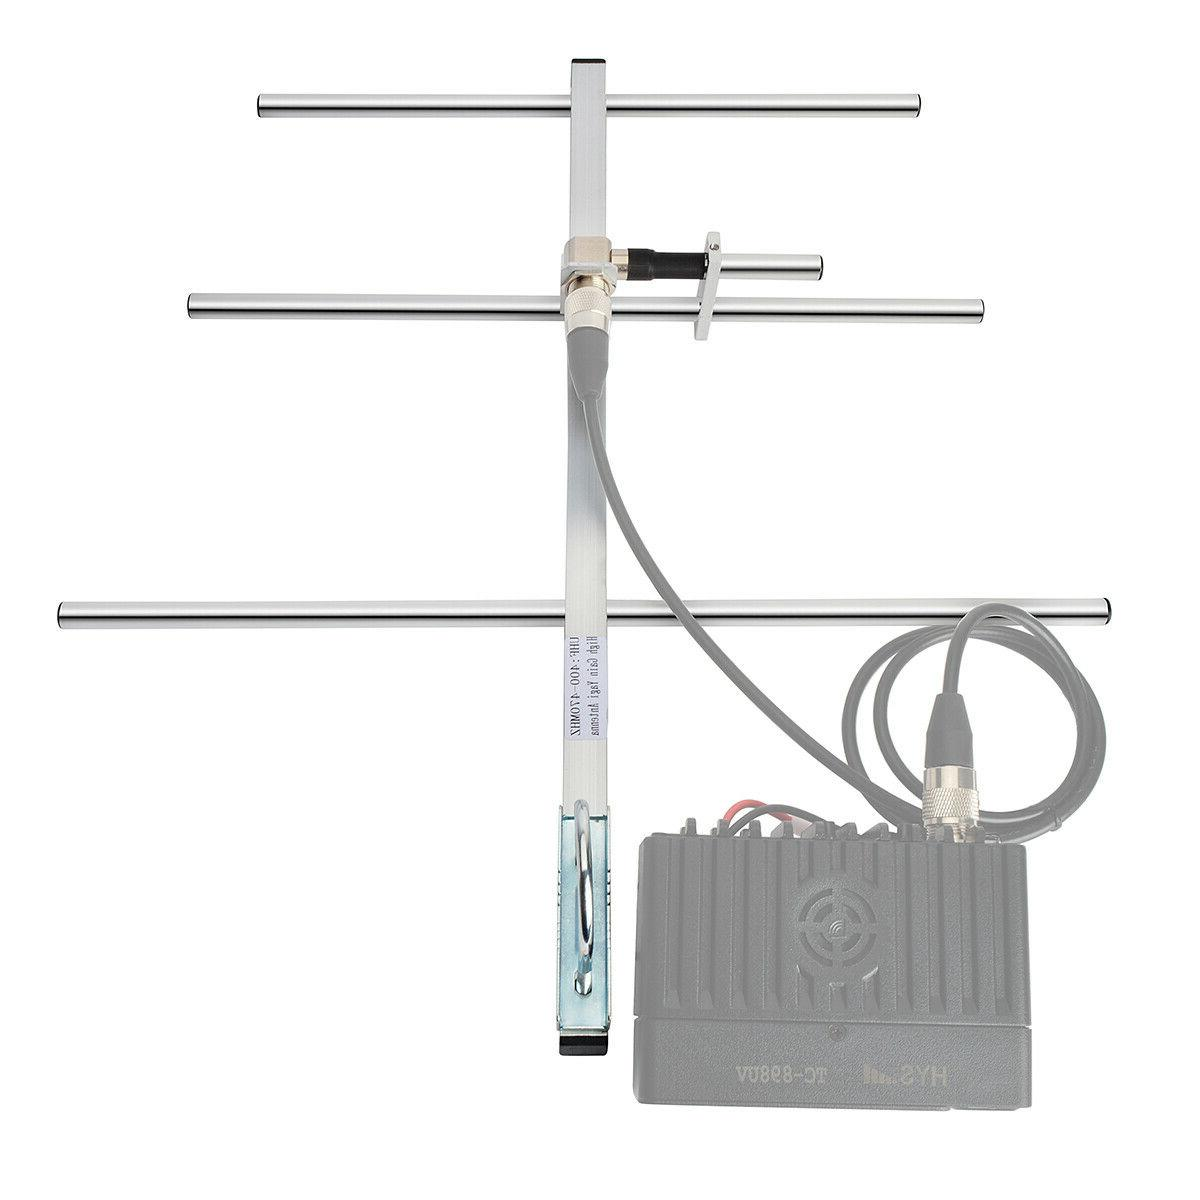 HYS 100W Antenna SL16 Female for Ham Mobile Transceiver Repeaters